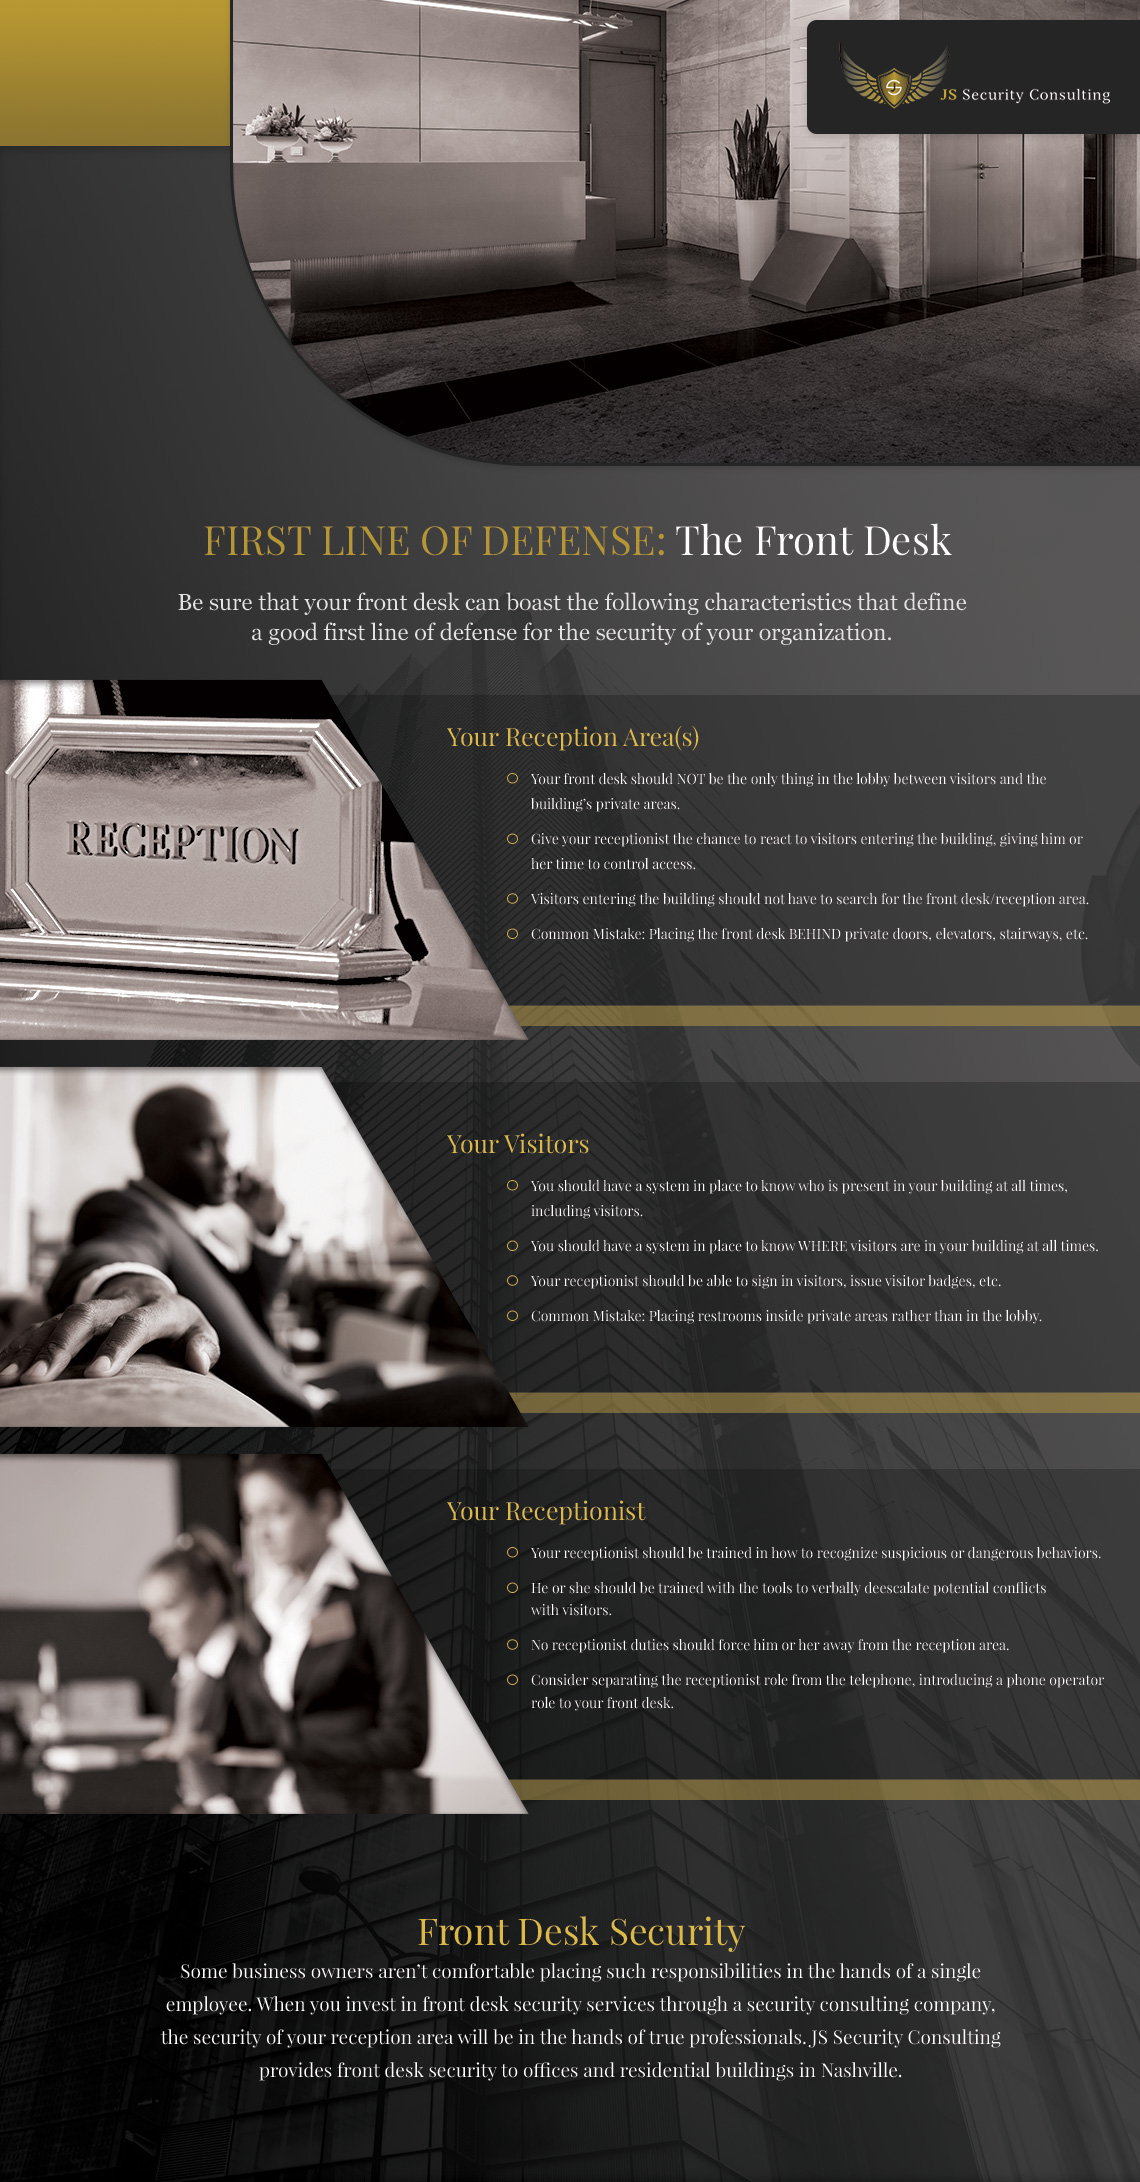 jssecurity_infographic_frontdesk